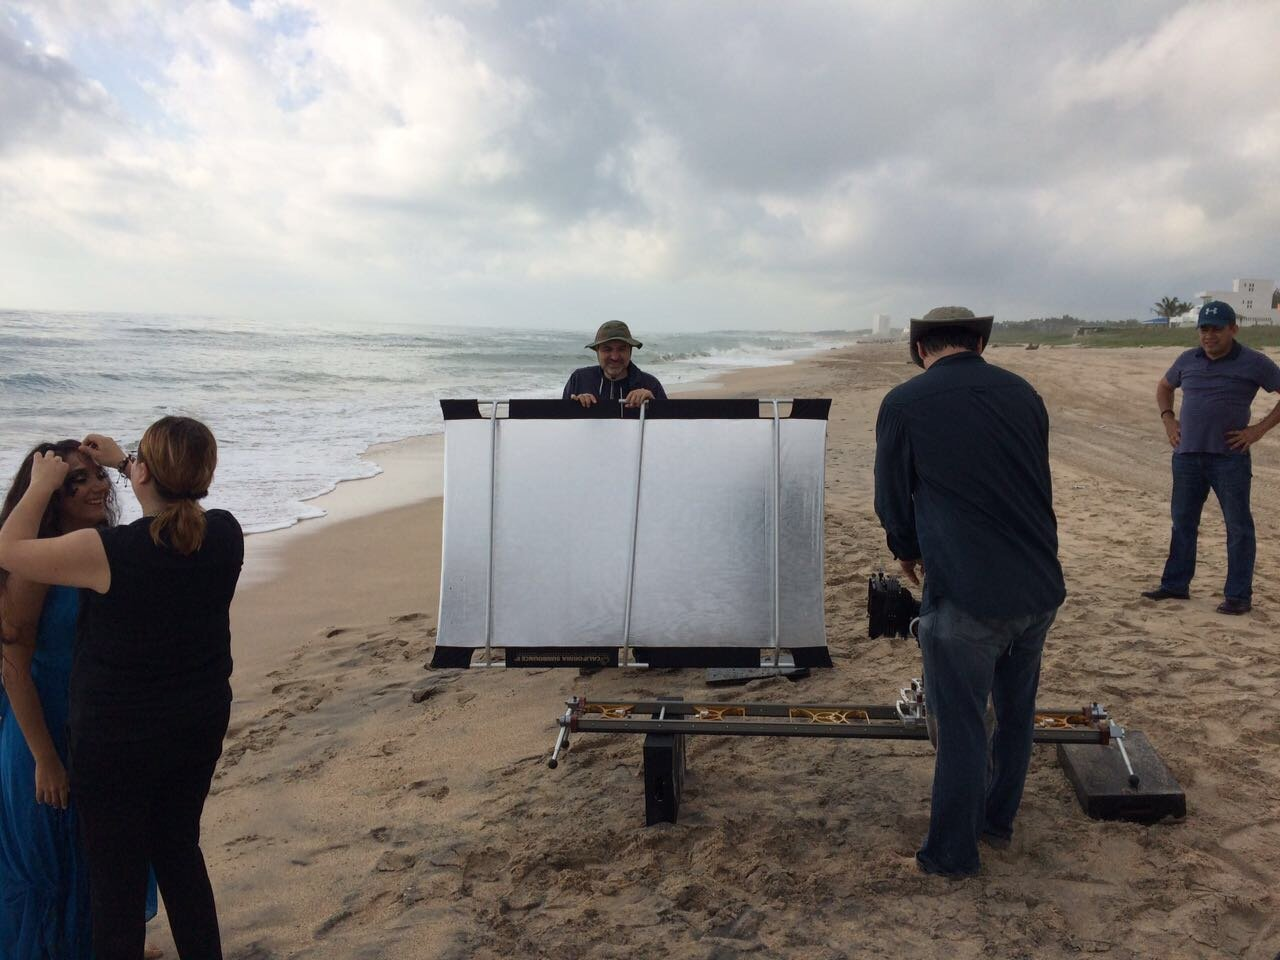 moises lugo medium slider on beach myt works in action